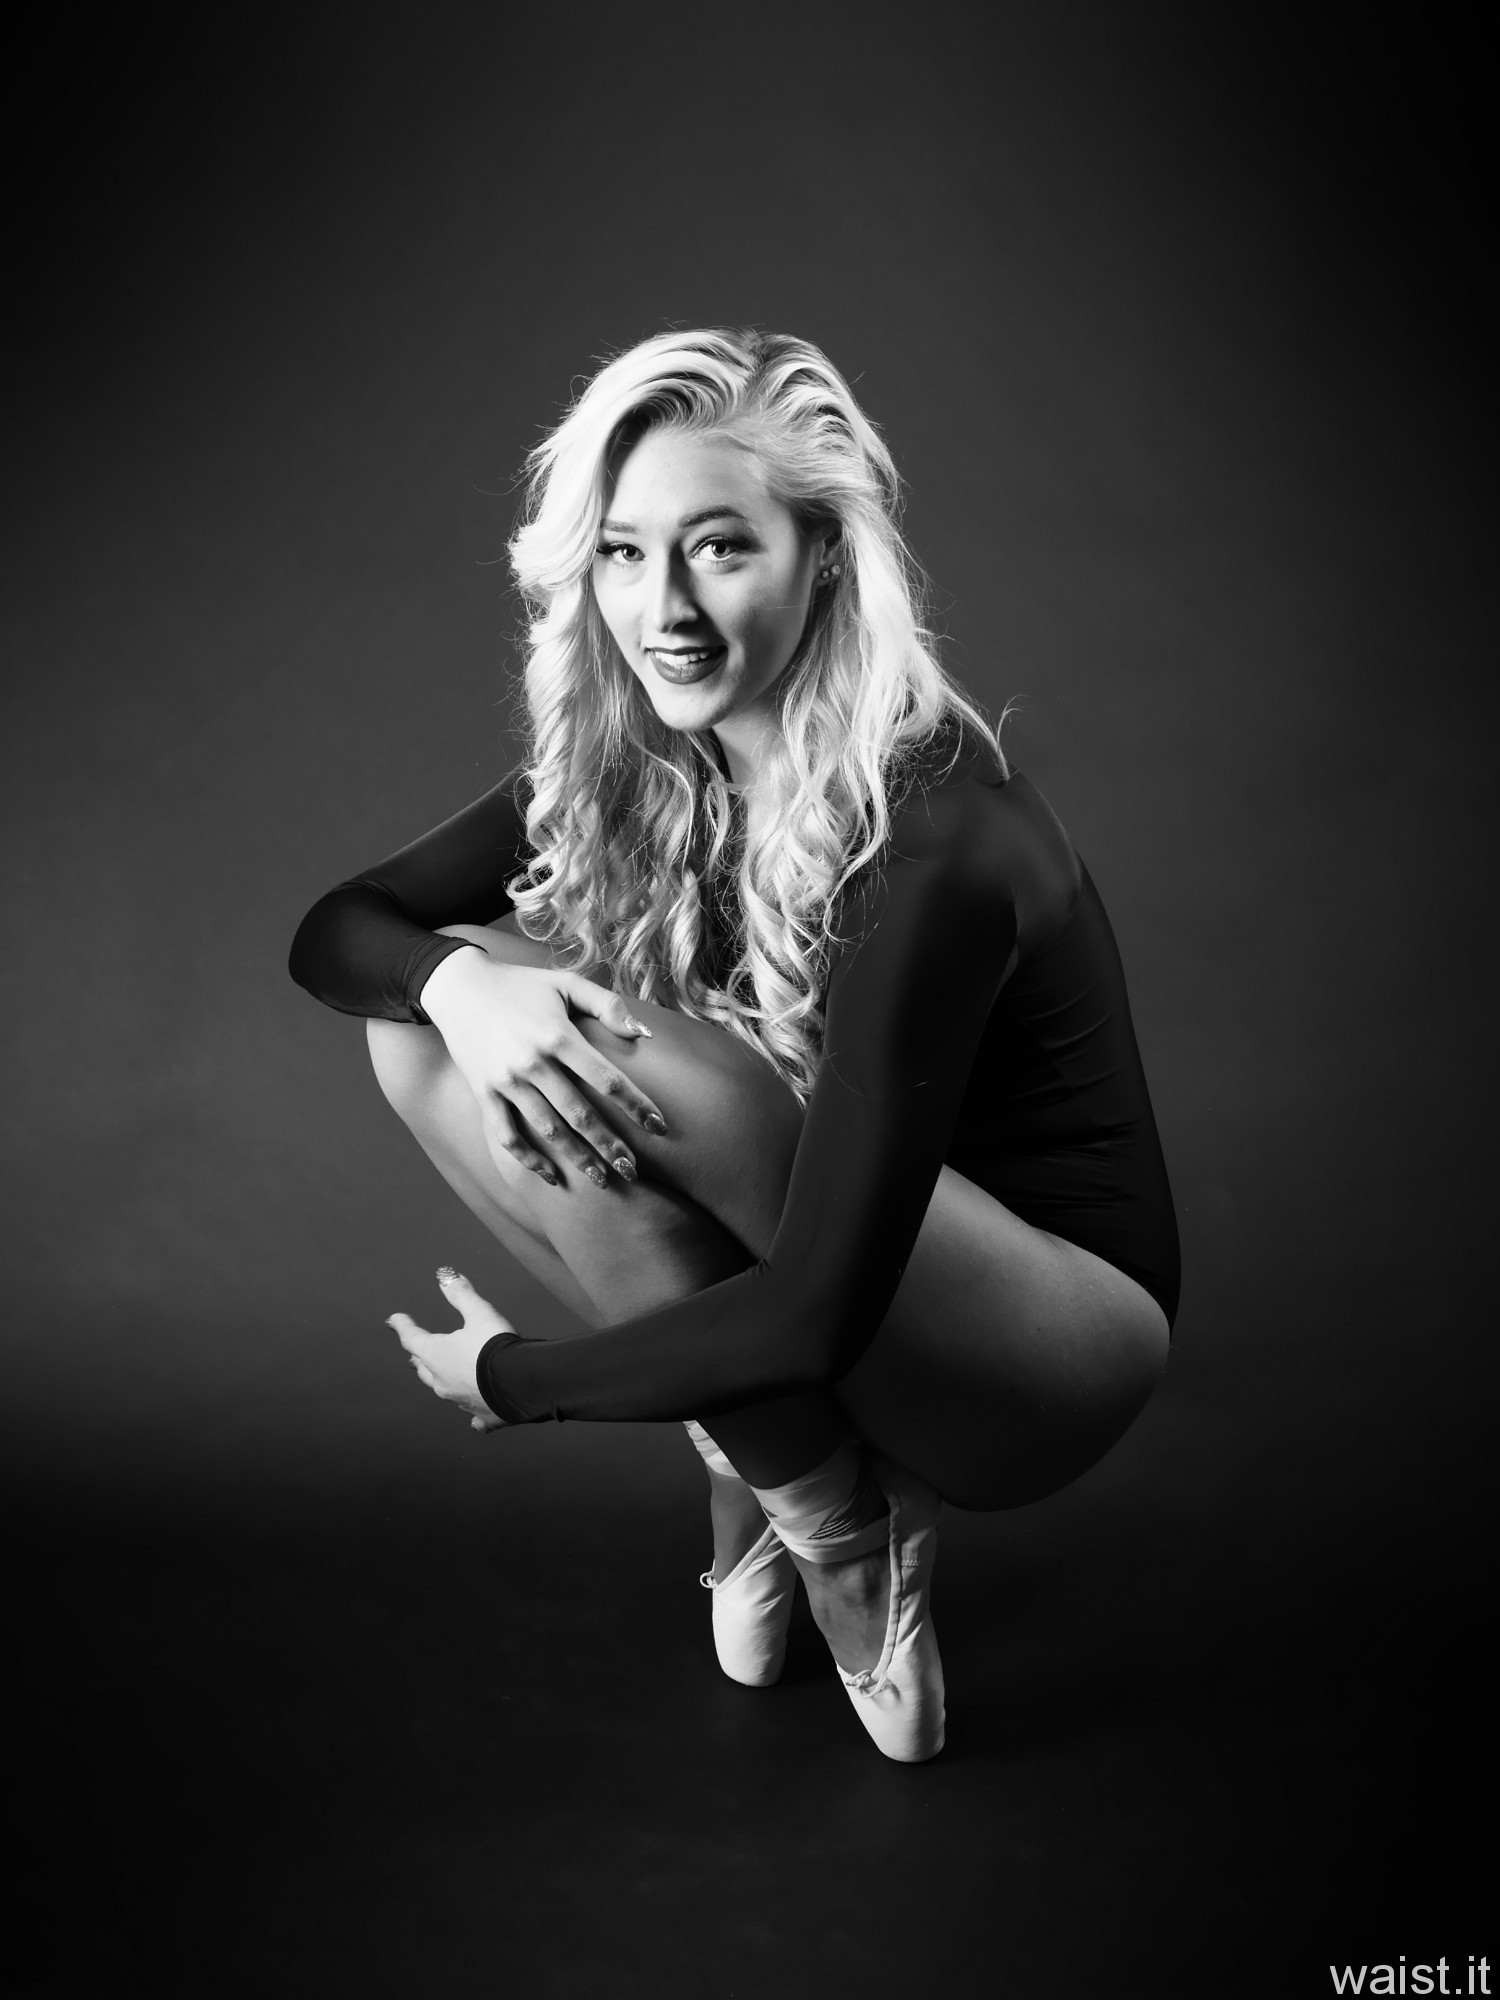 2016-11-06 Fleur in pointe shoes and black leotard monochrome